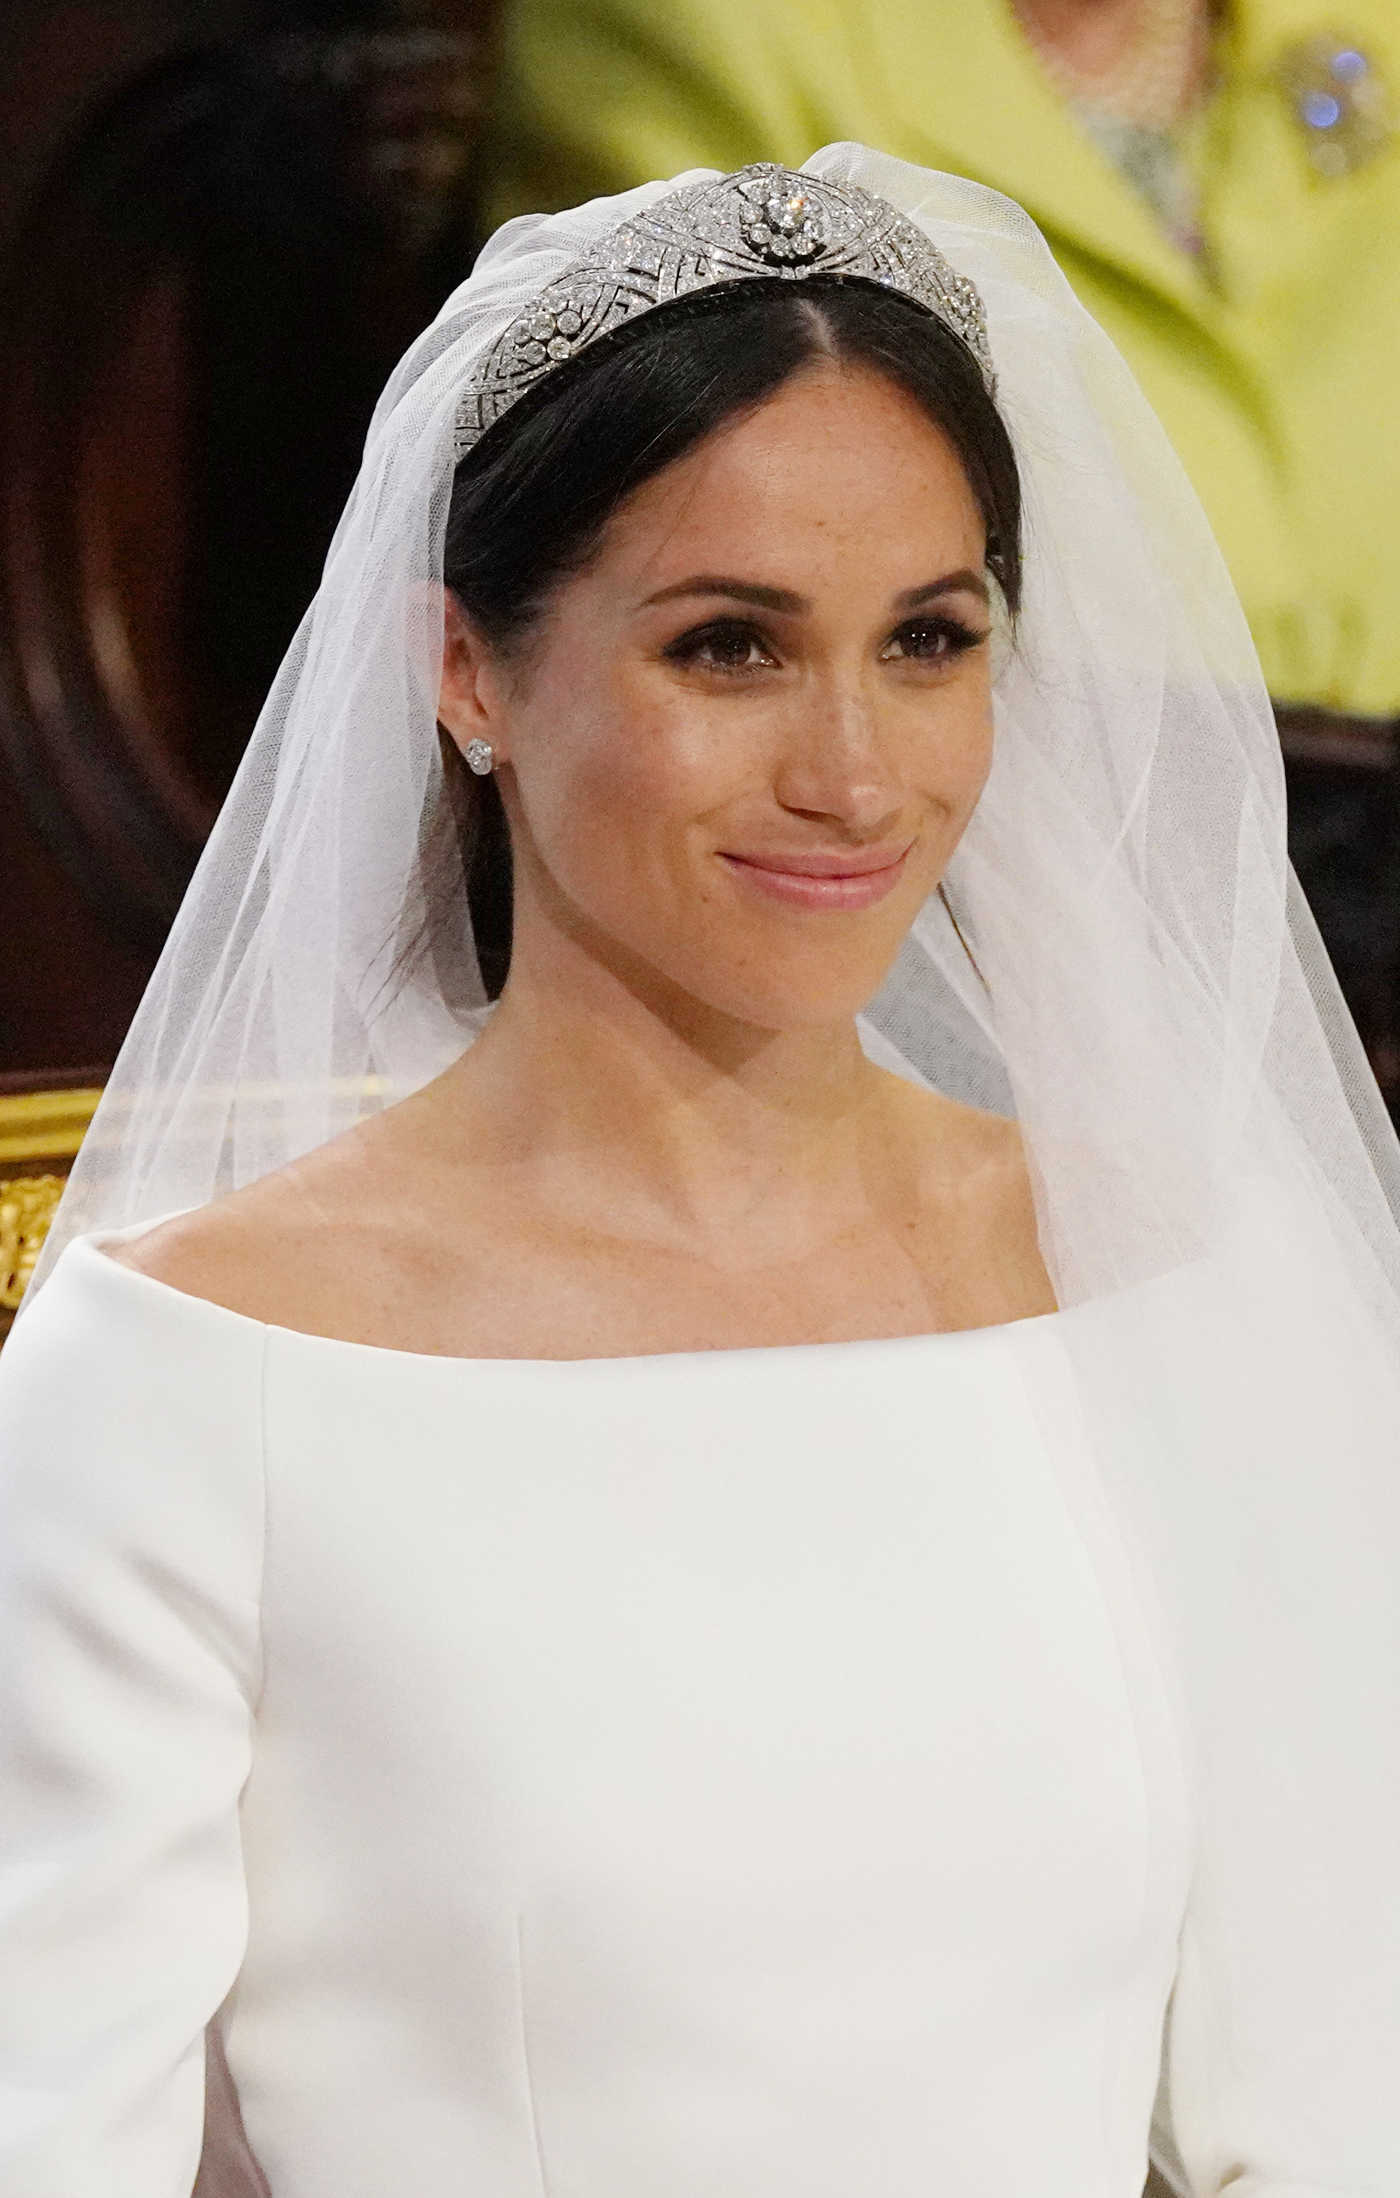 Meghan Markle at St George's Chapel to Wed Prince Harry in Windsor 05/19/2018